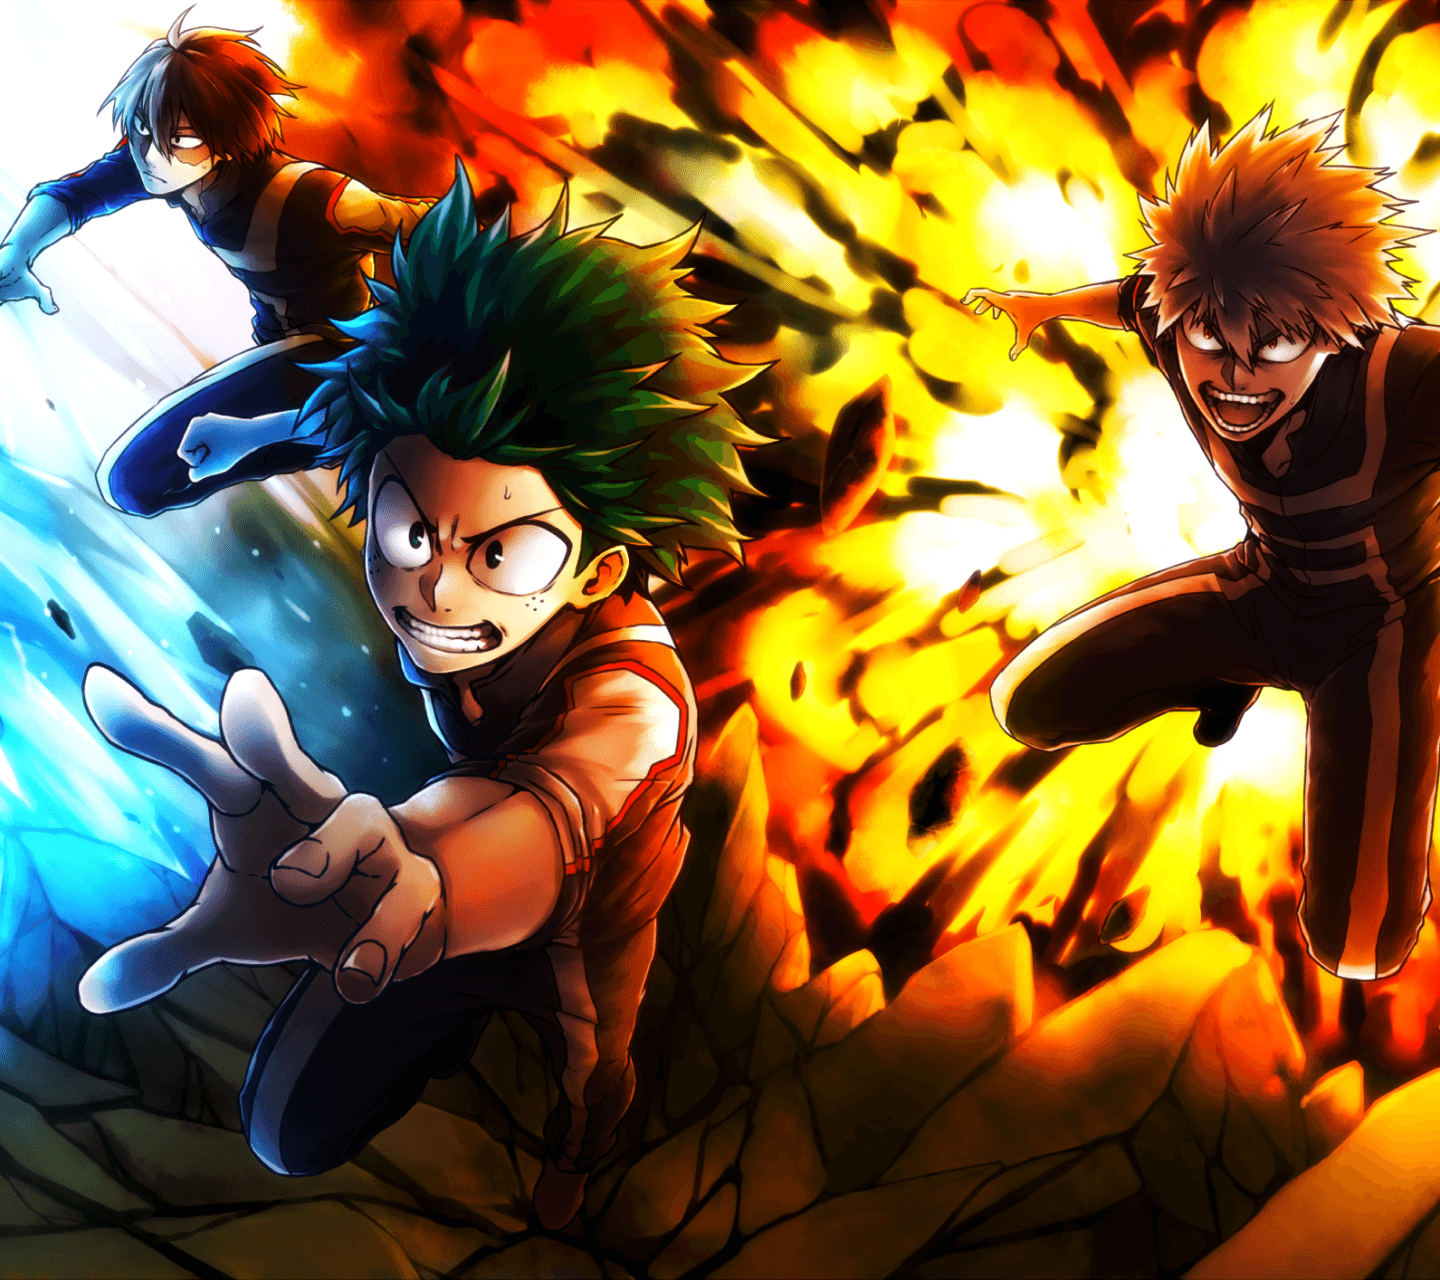 1440x1280 - Anime/Boku No Hero Academia - Wallpaper ID: 626952